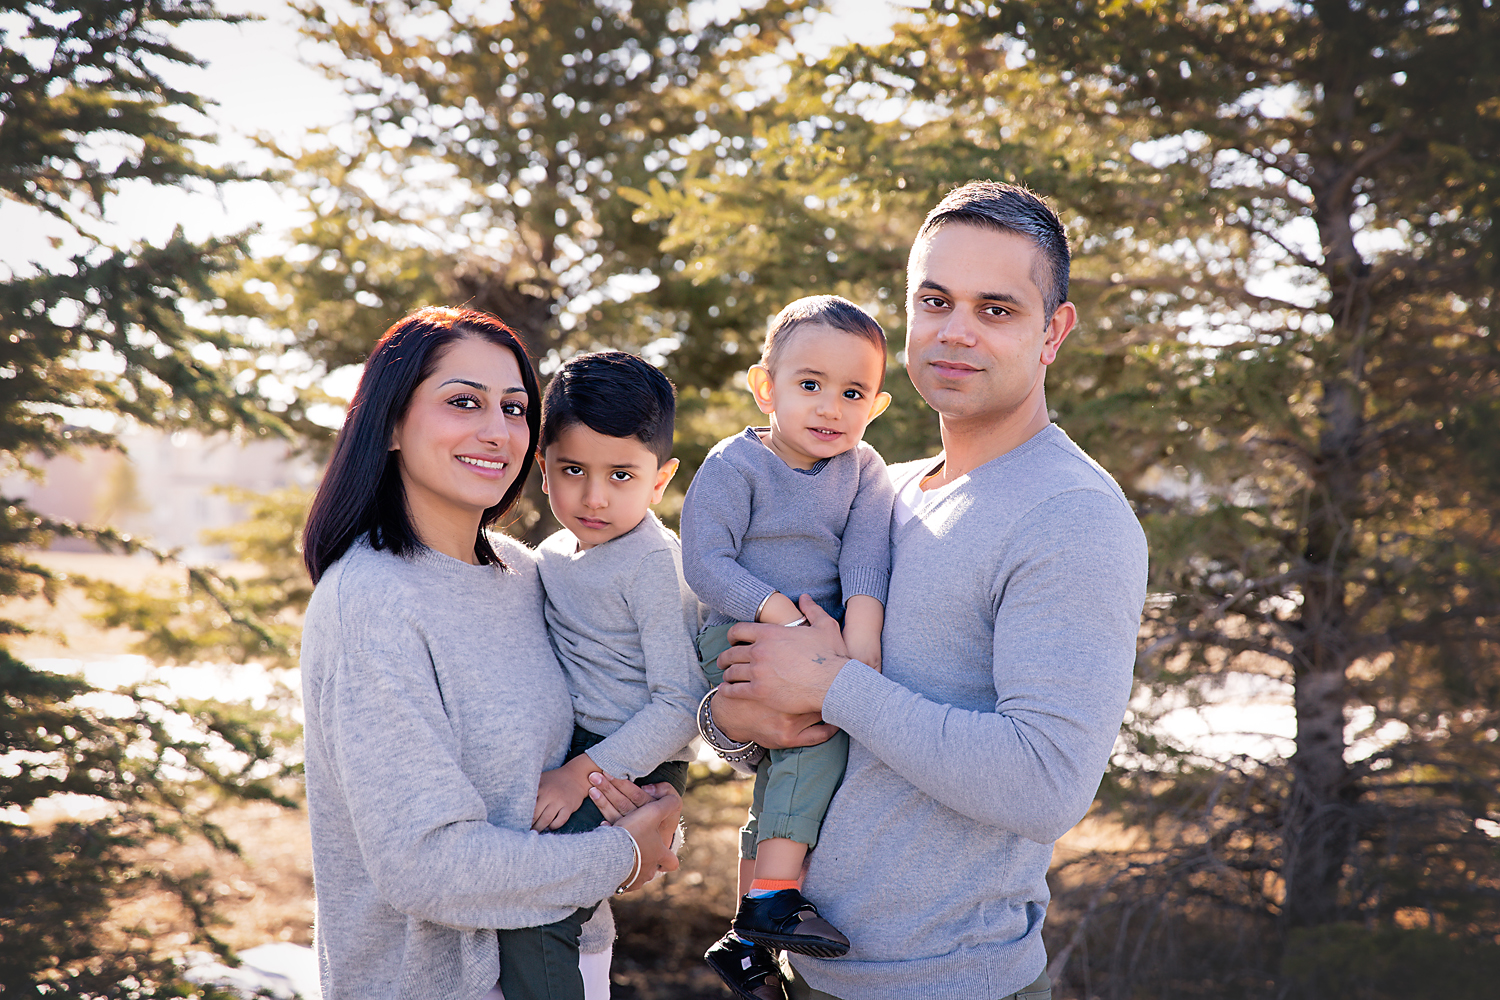 Portrait of a family of 4 - mother, father and 2 sons. Family photoshoot ideas - Calgary Family Photographer